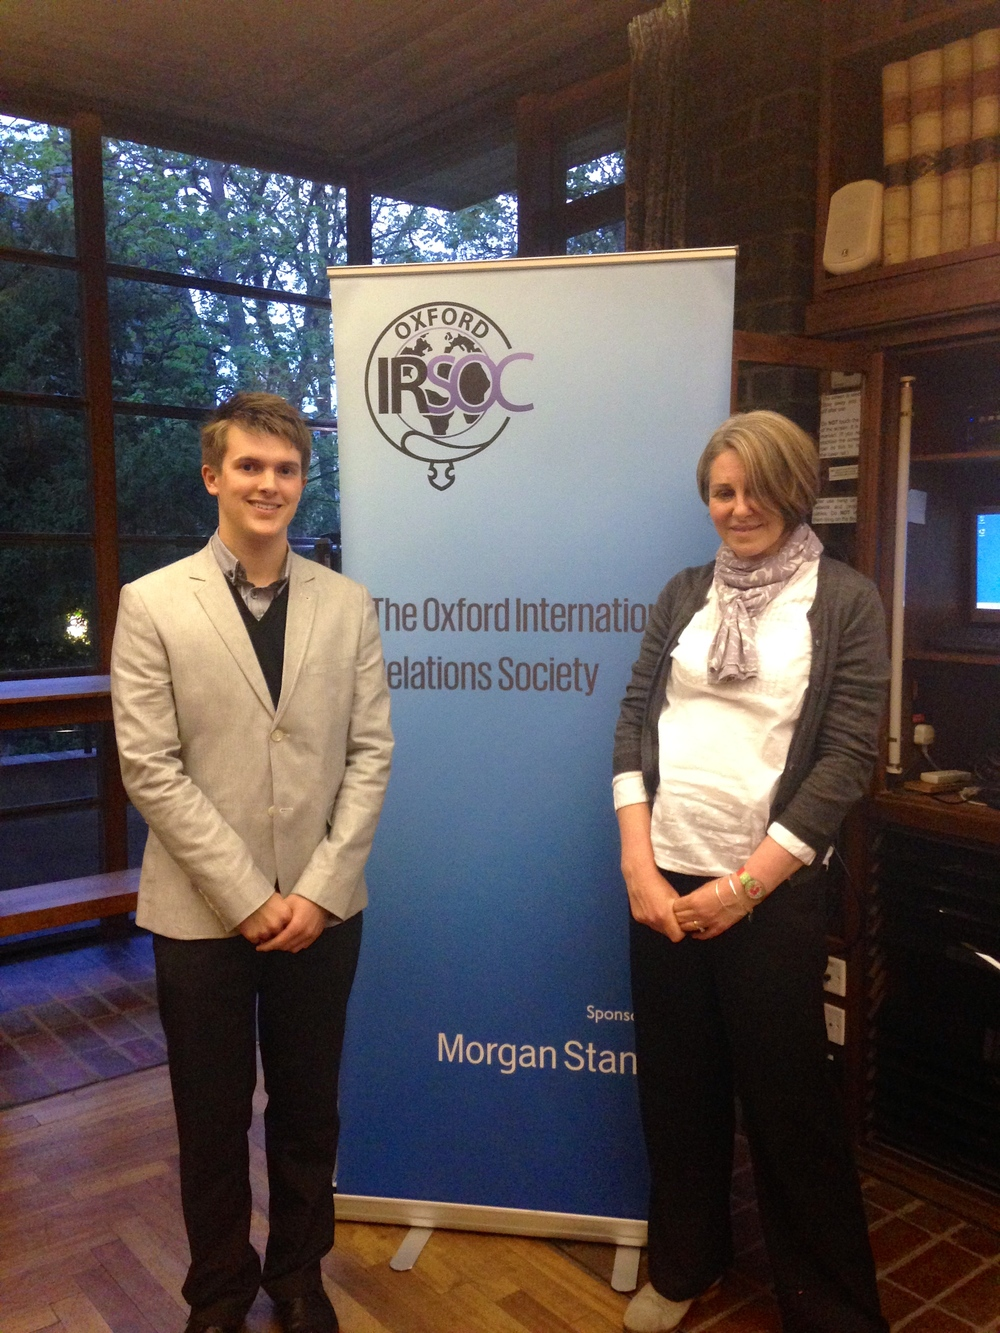 The President, Daniel Bayliss, with Natalie Martin